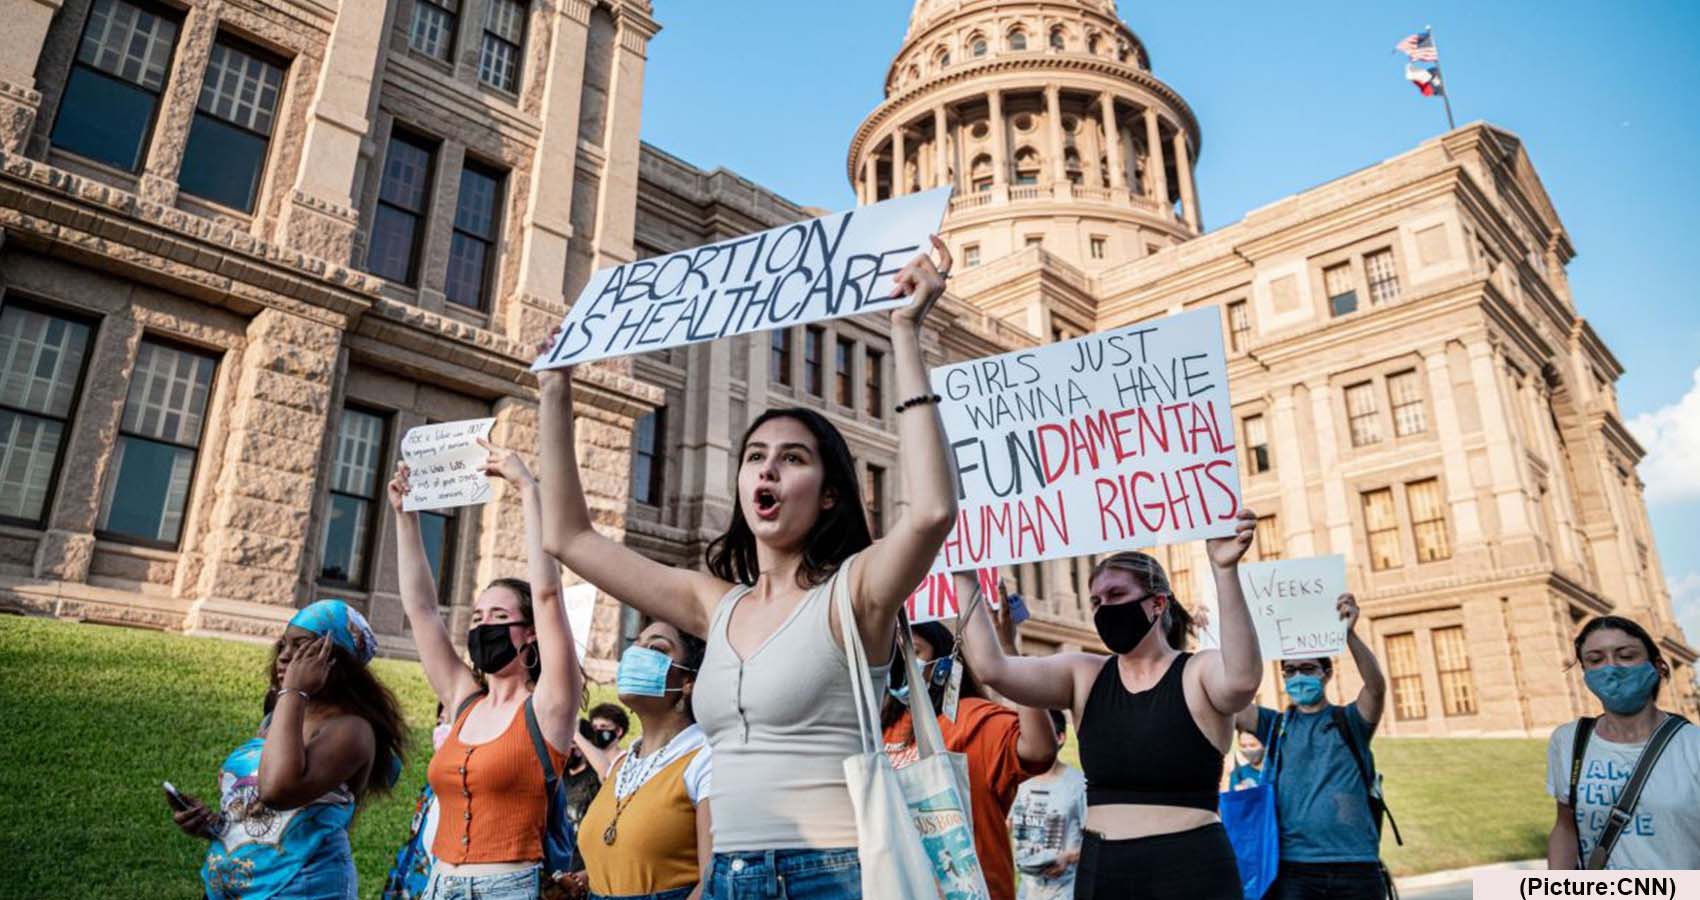 Texas' Abortion Ban Is Most Restrictive Ever